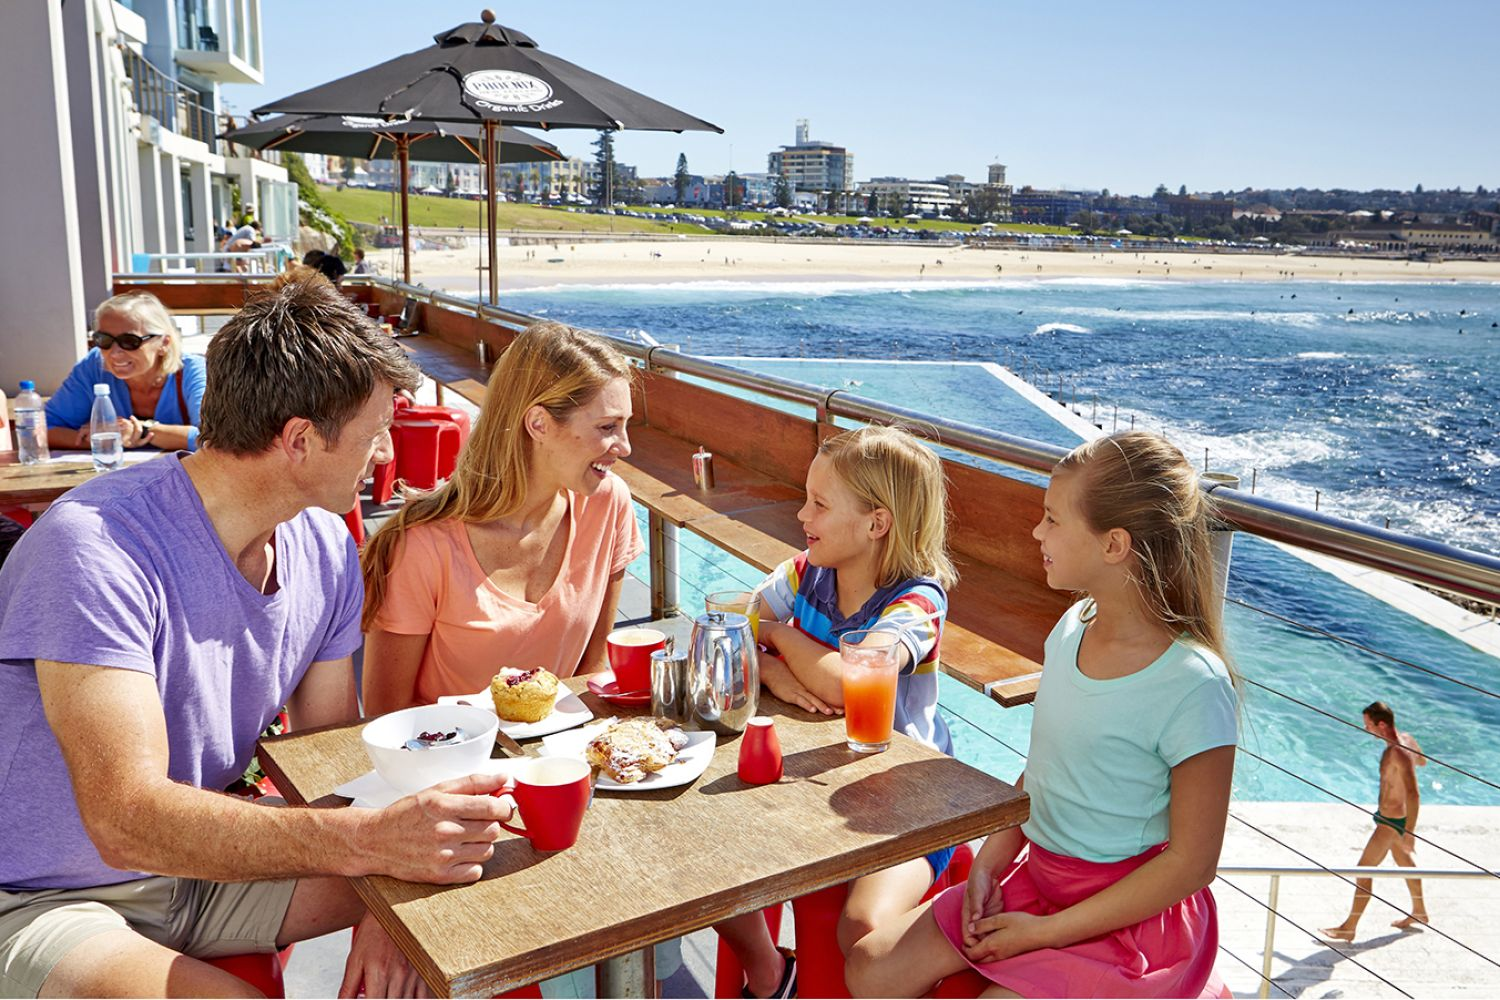 A family at the Crabbe Hole Cafe in Bondi